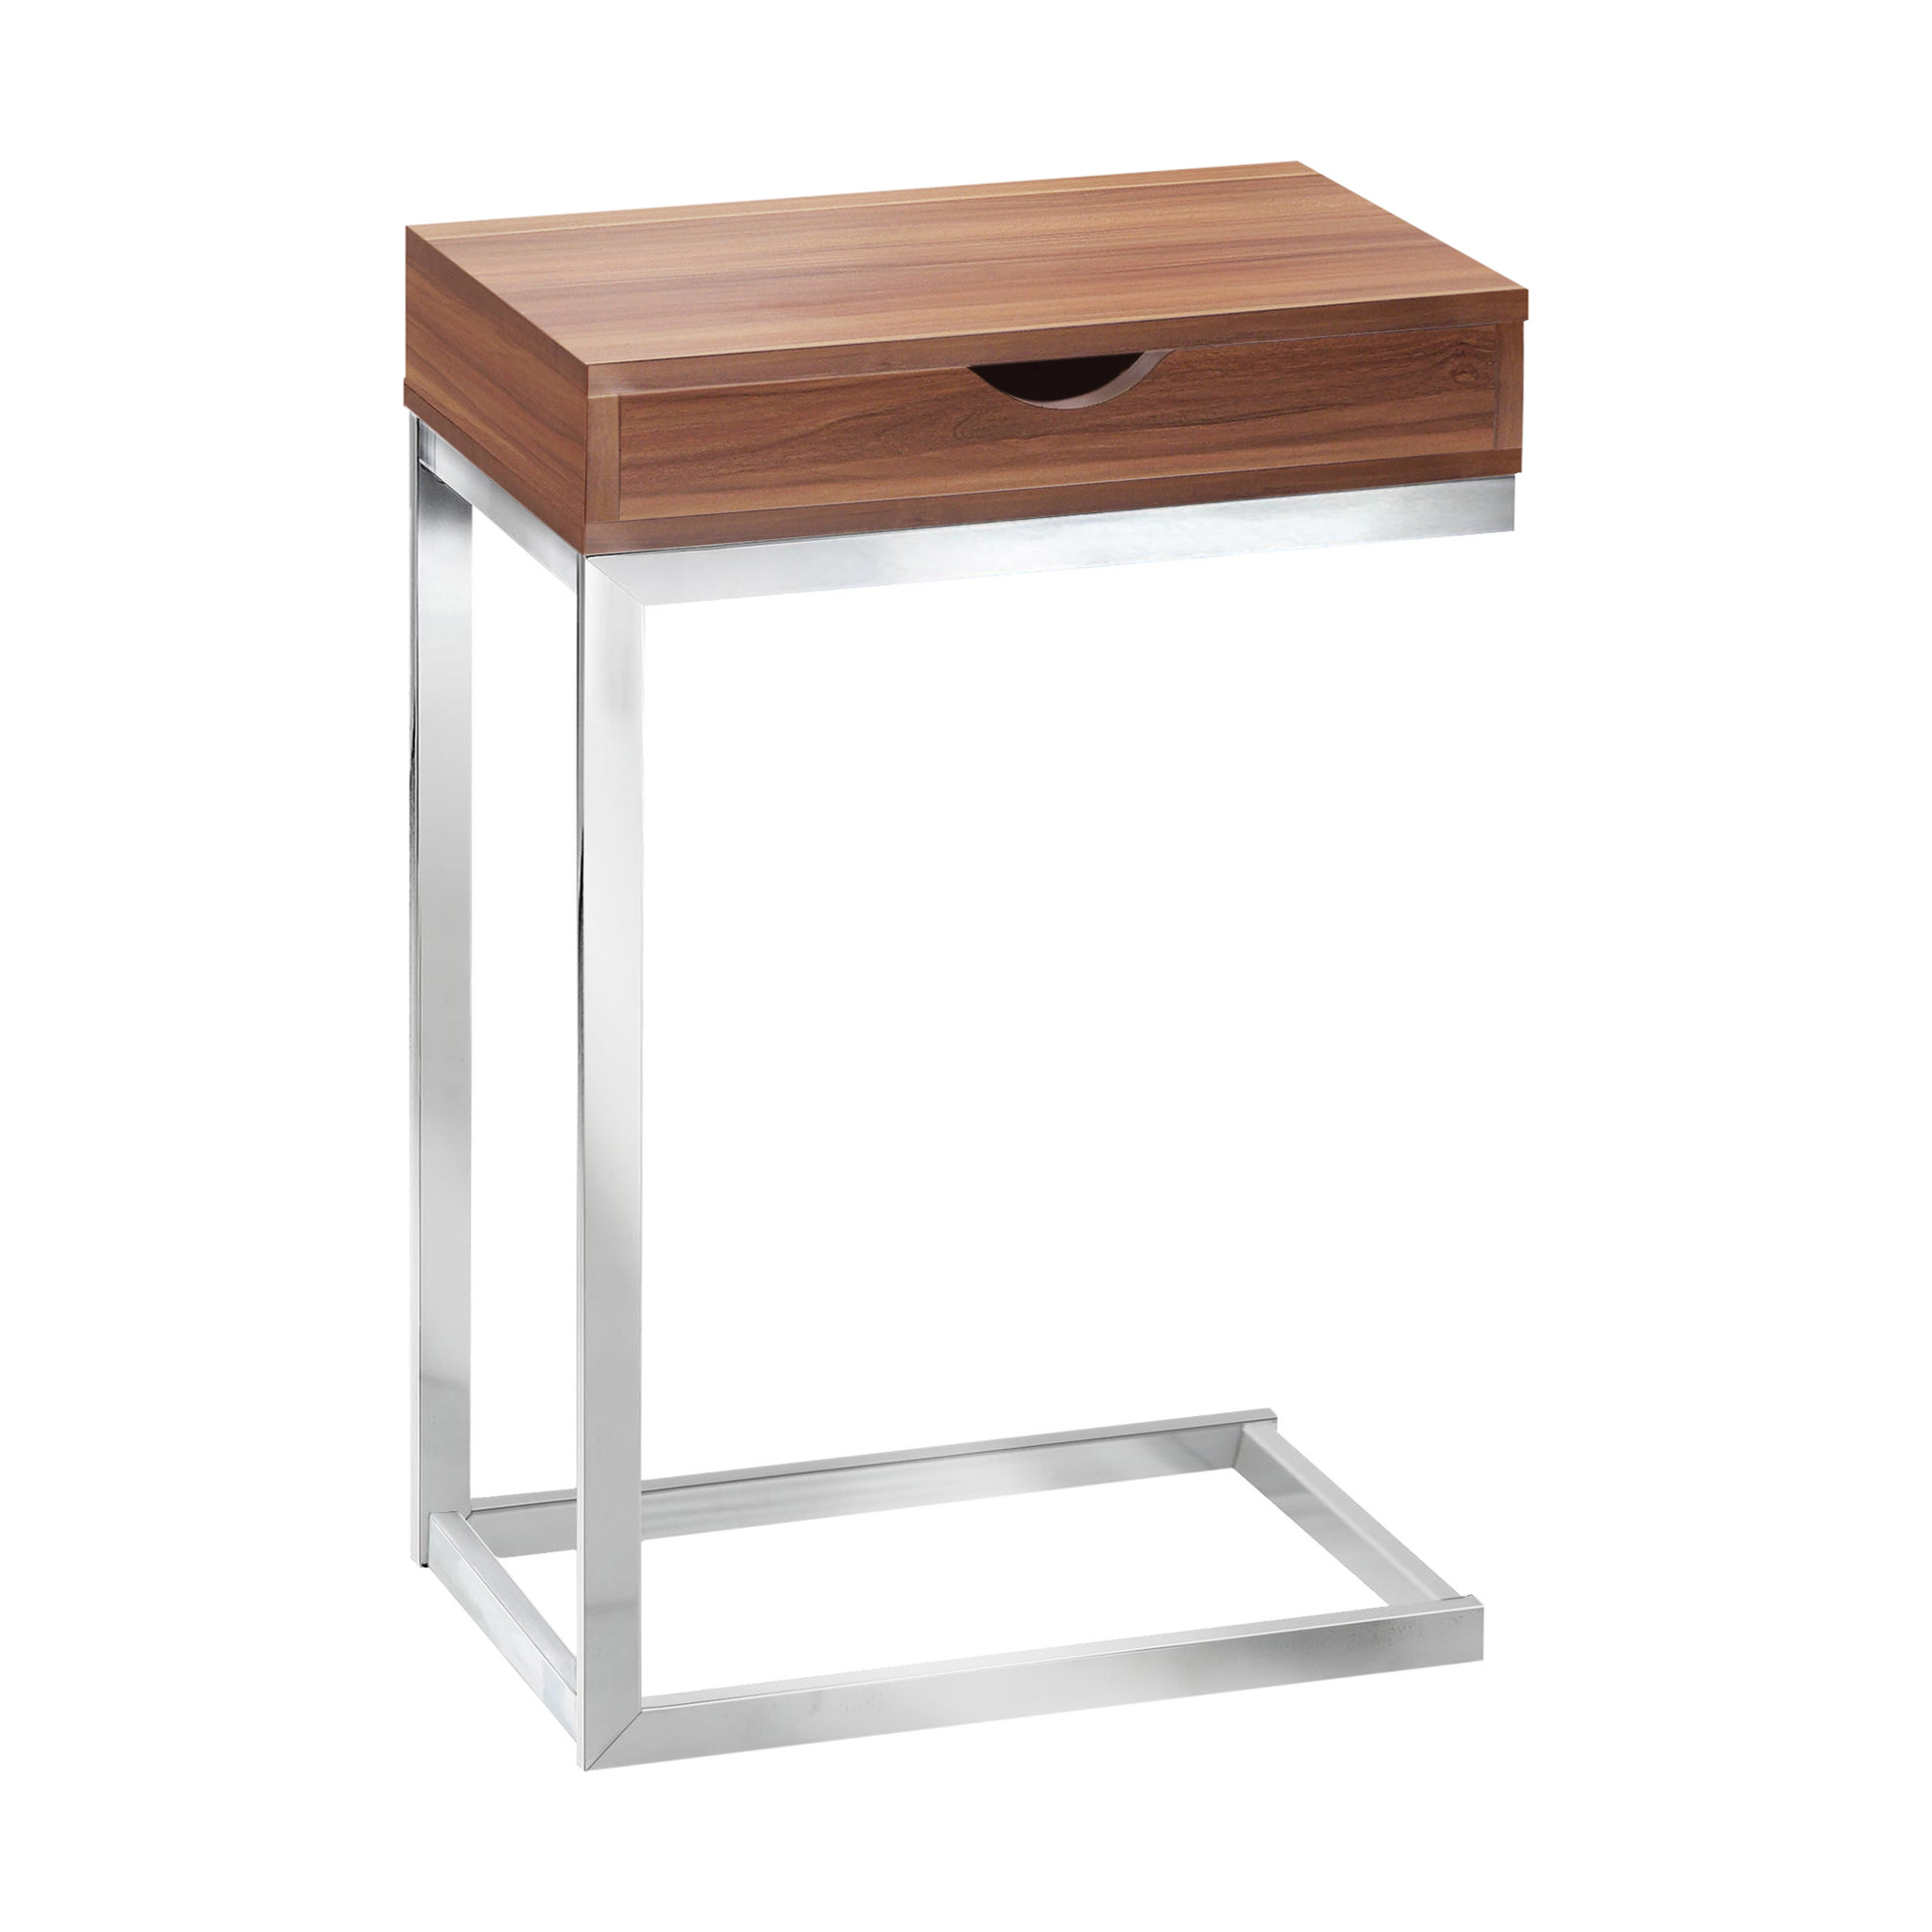 "24"" Accent Table With A Drawer, Chrome Metal Base and Walnut Top"